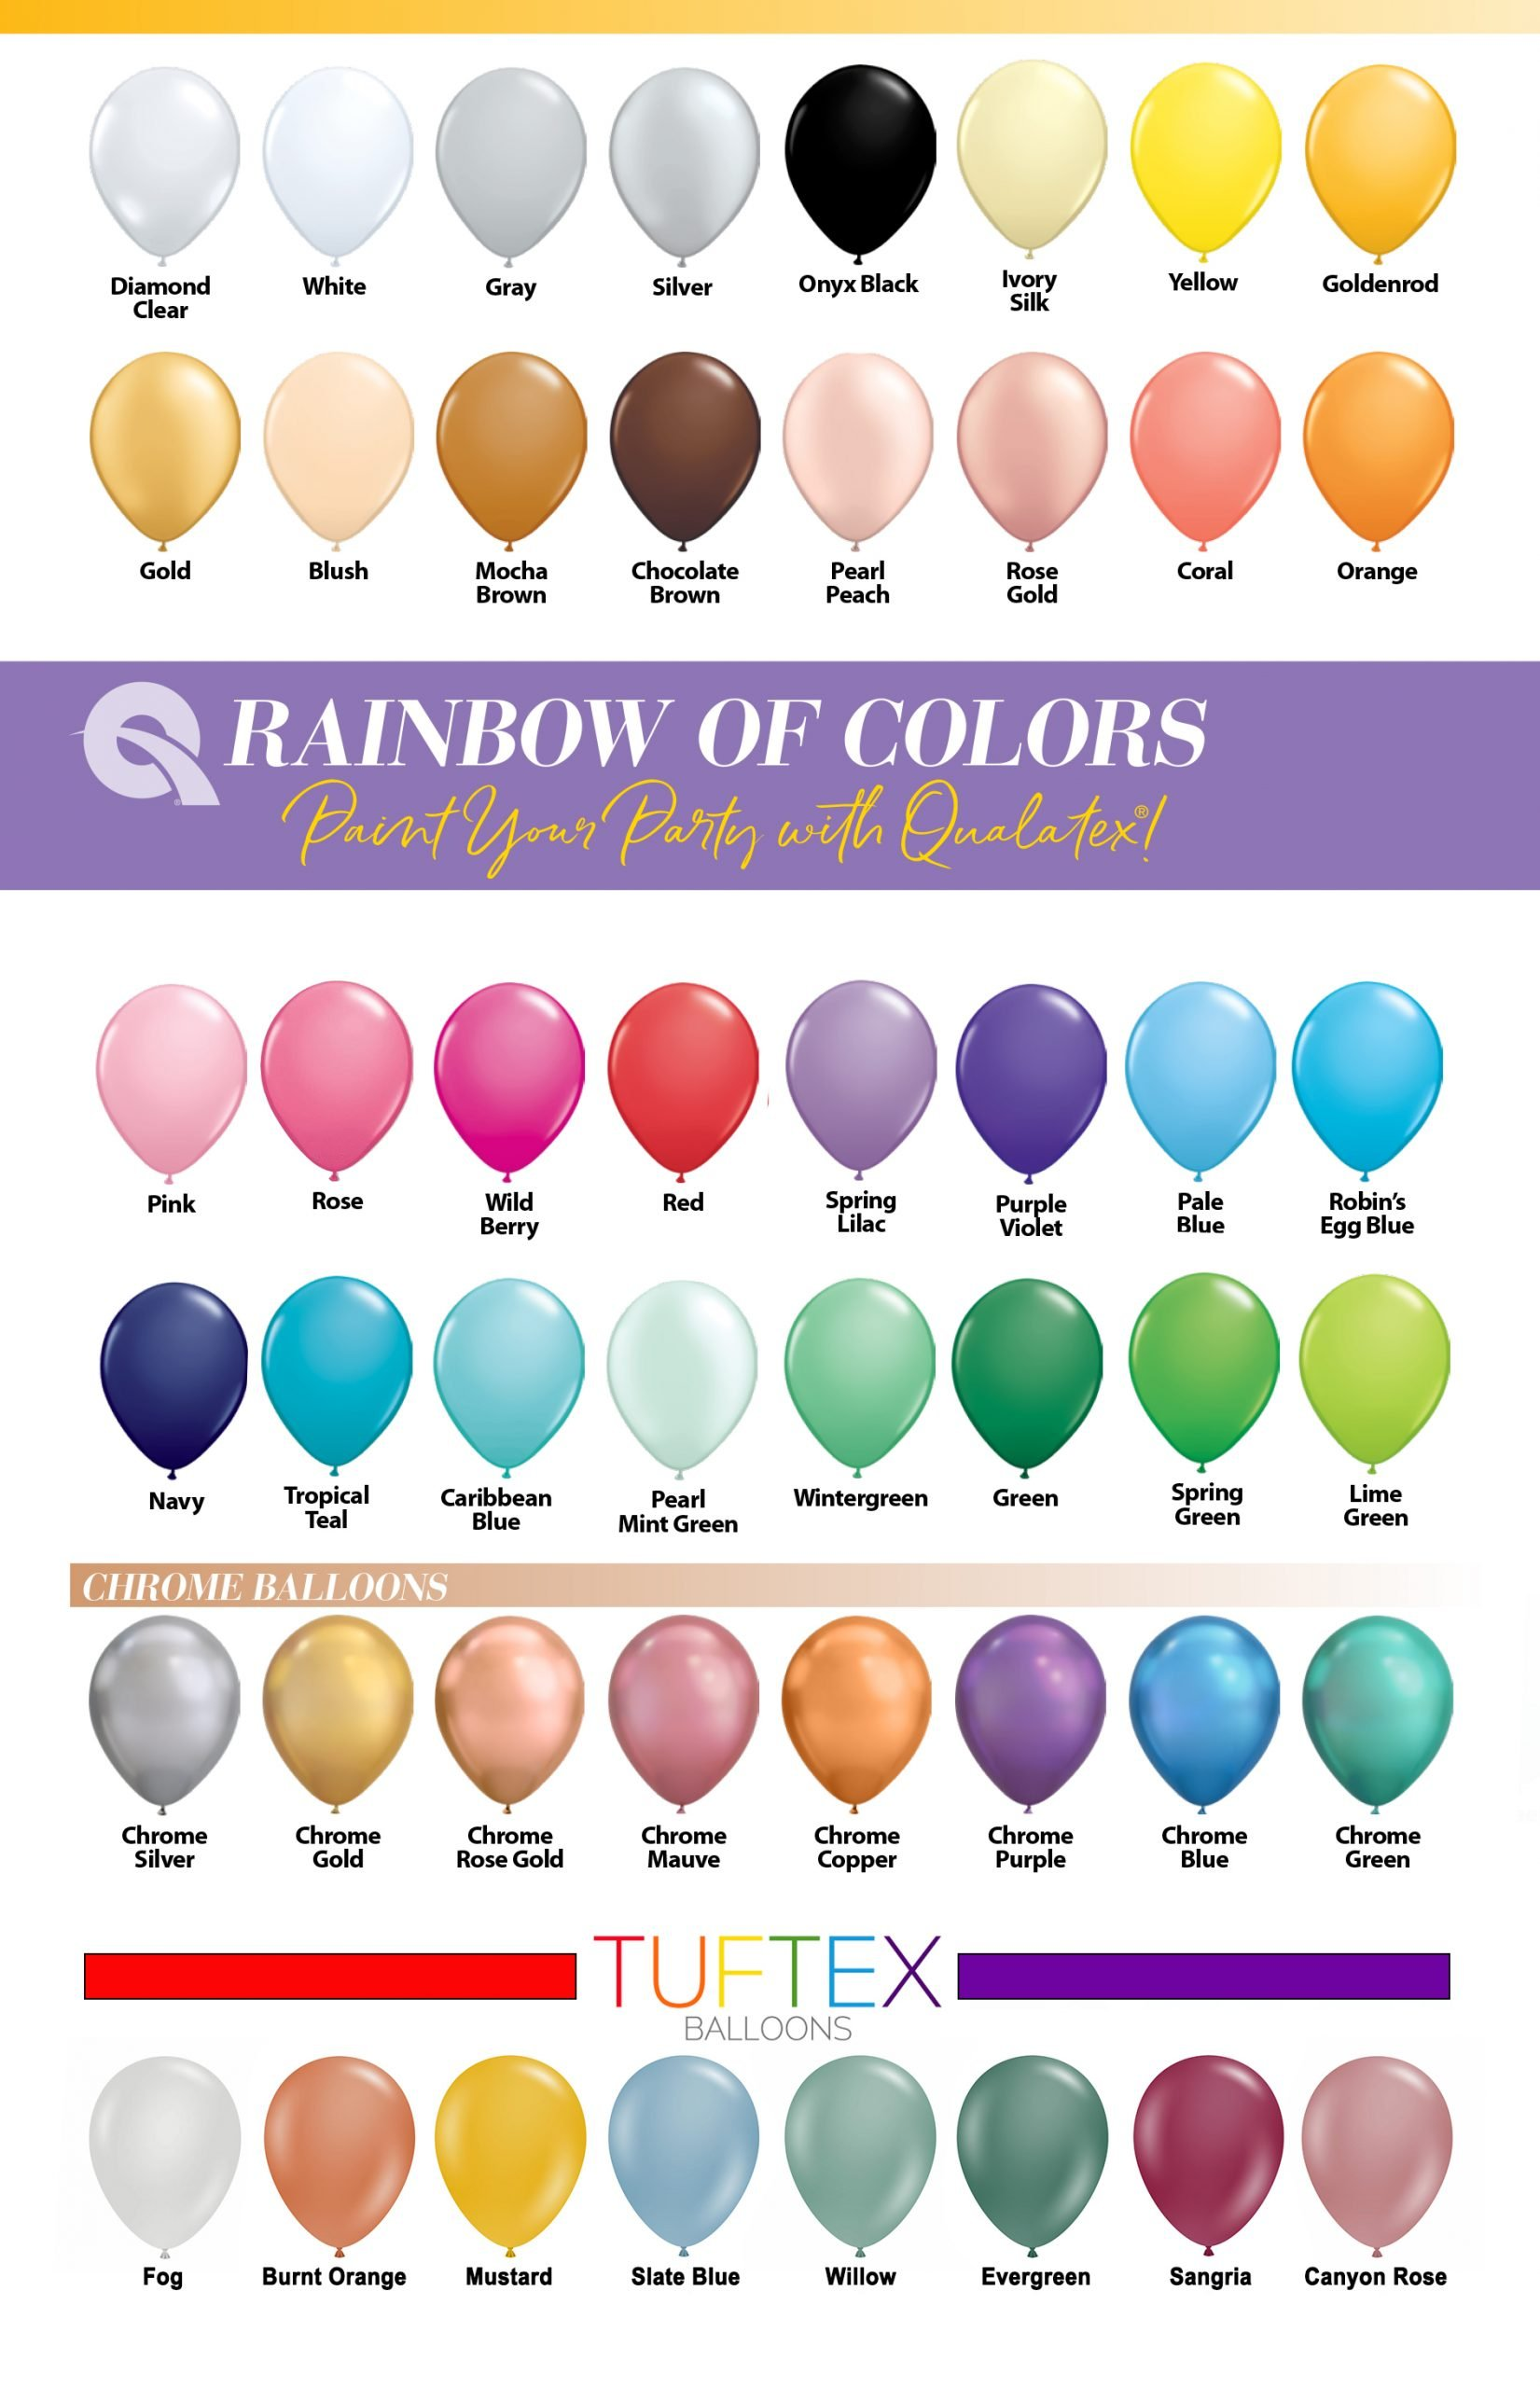 Please note some colors may not be available due to production shortages.  We will do our best to accommodate your selections.